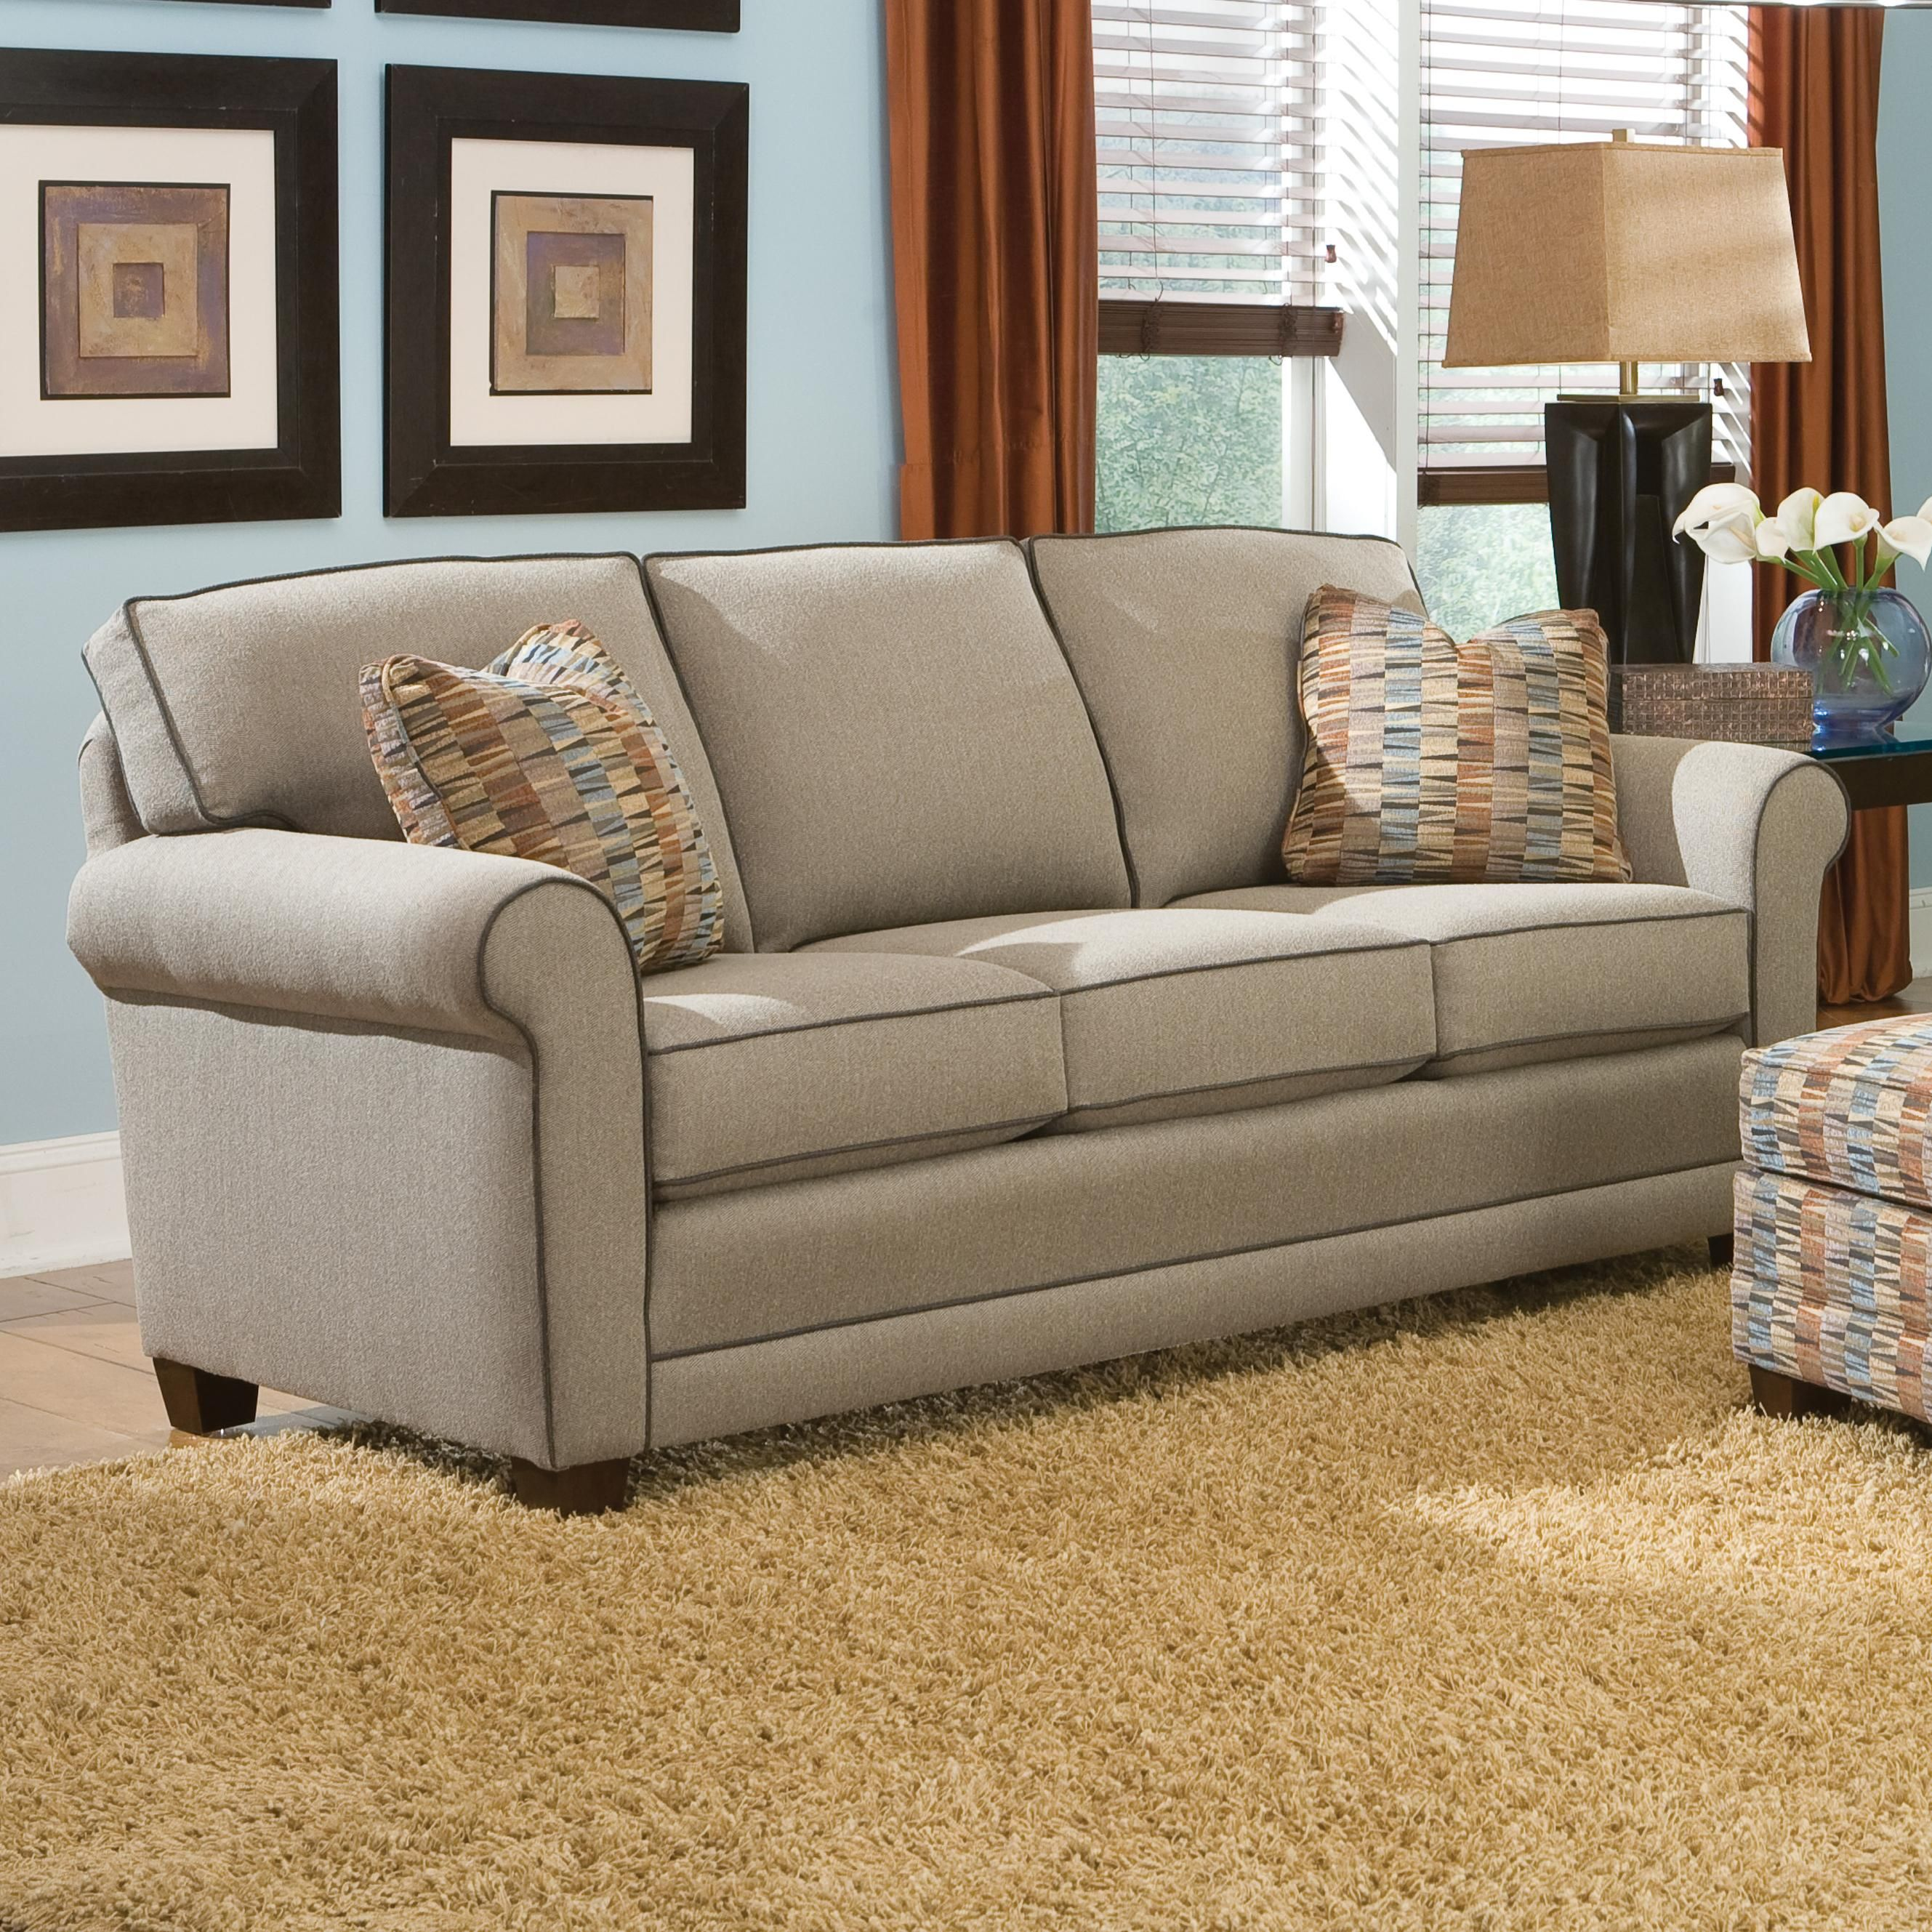 Incroyable 366 Casual Stationary Sofa With Rolled Arms By Smith Brothers   Wolf  Furniture   Sofa Pennsylvania